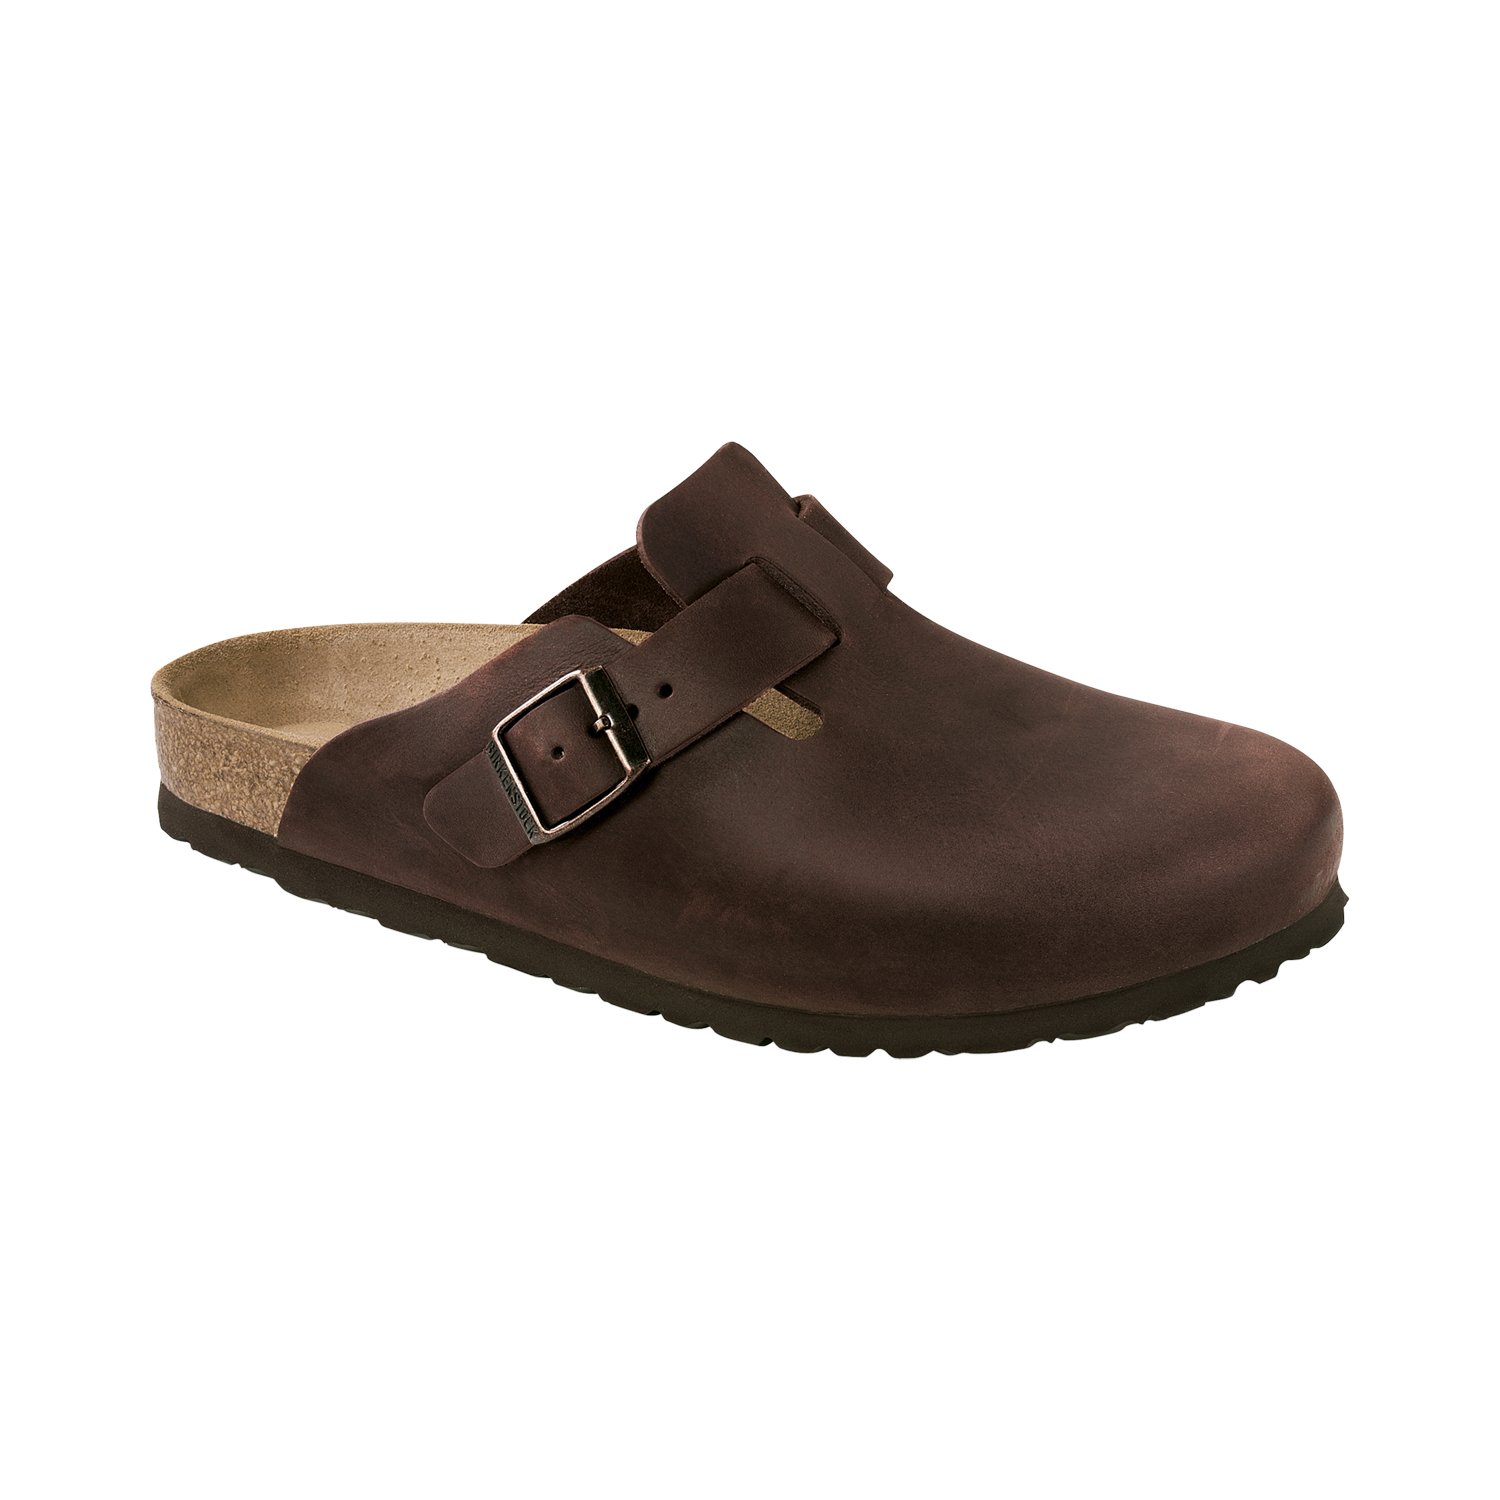 Birkenstock Boston Oiled Leather Herren Pantolette